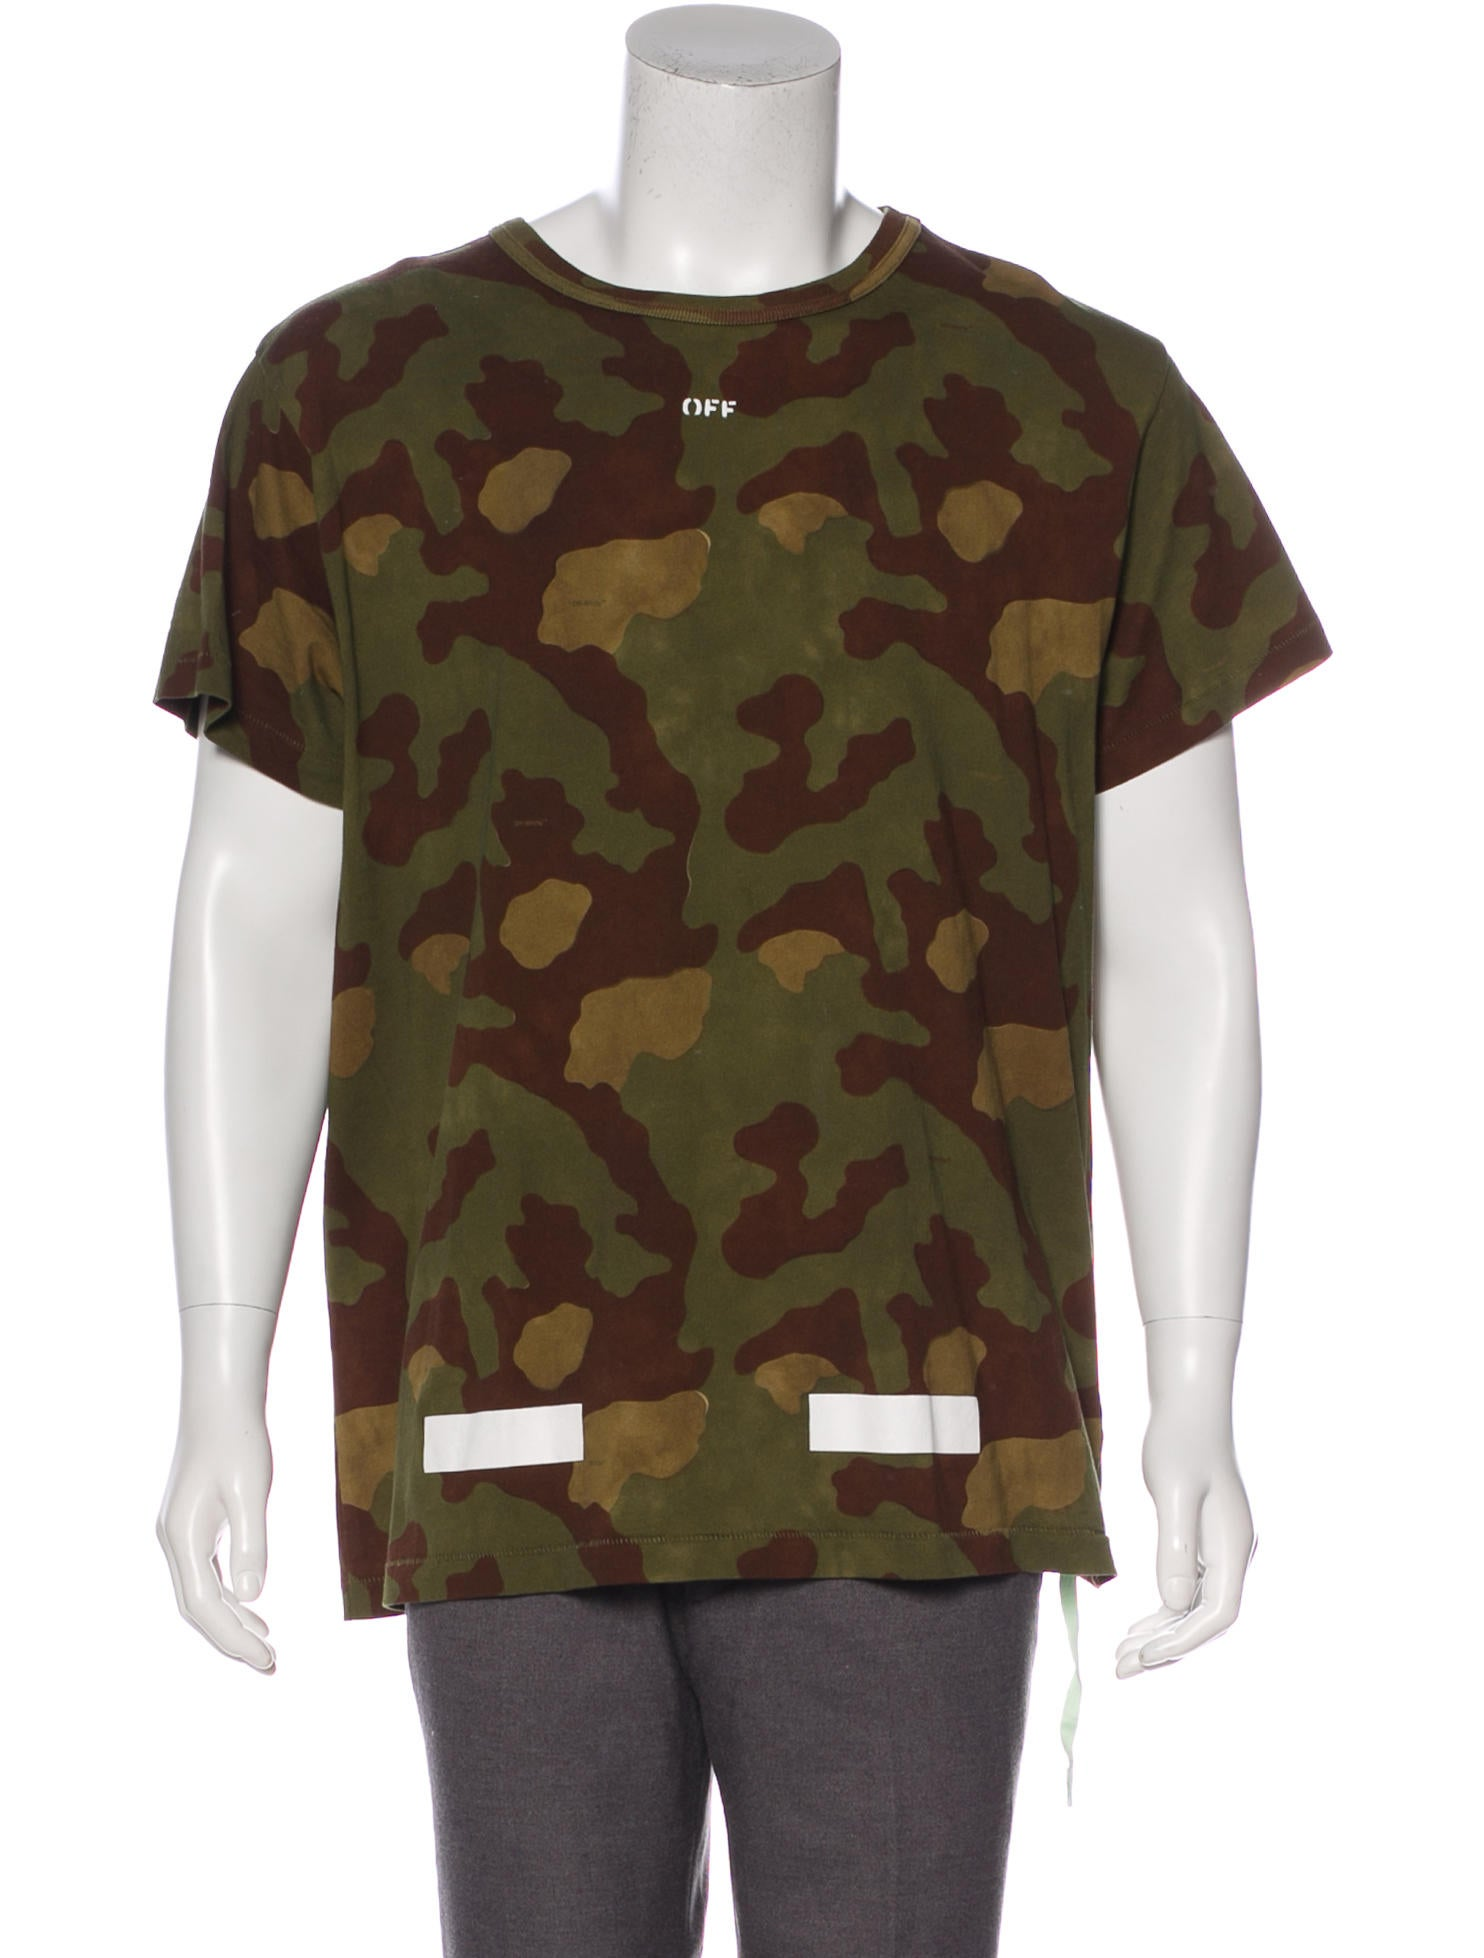 faa35def3e64 Off-White 2017 Camouflage Arrows T-Shirt - Clothing - OFF21325